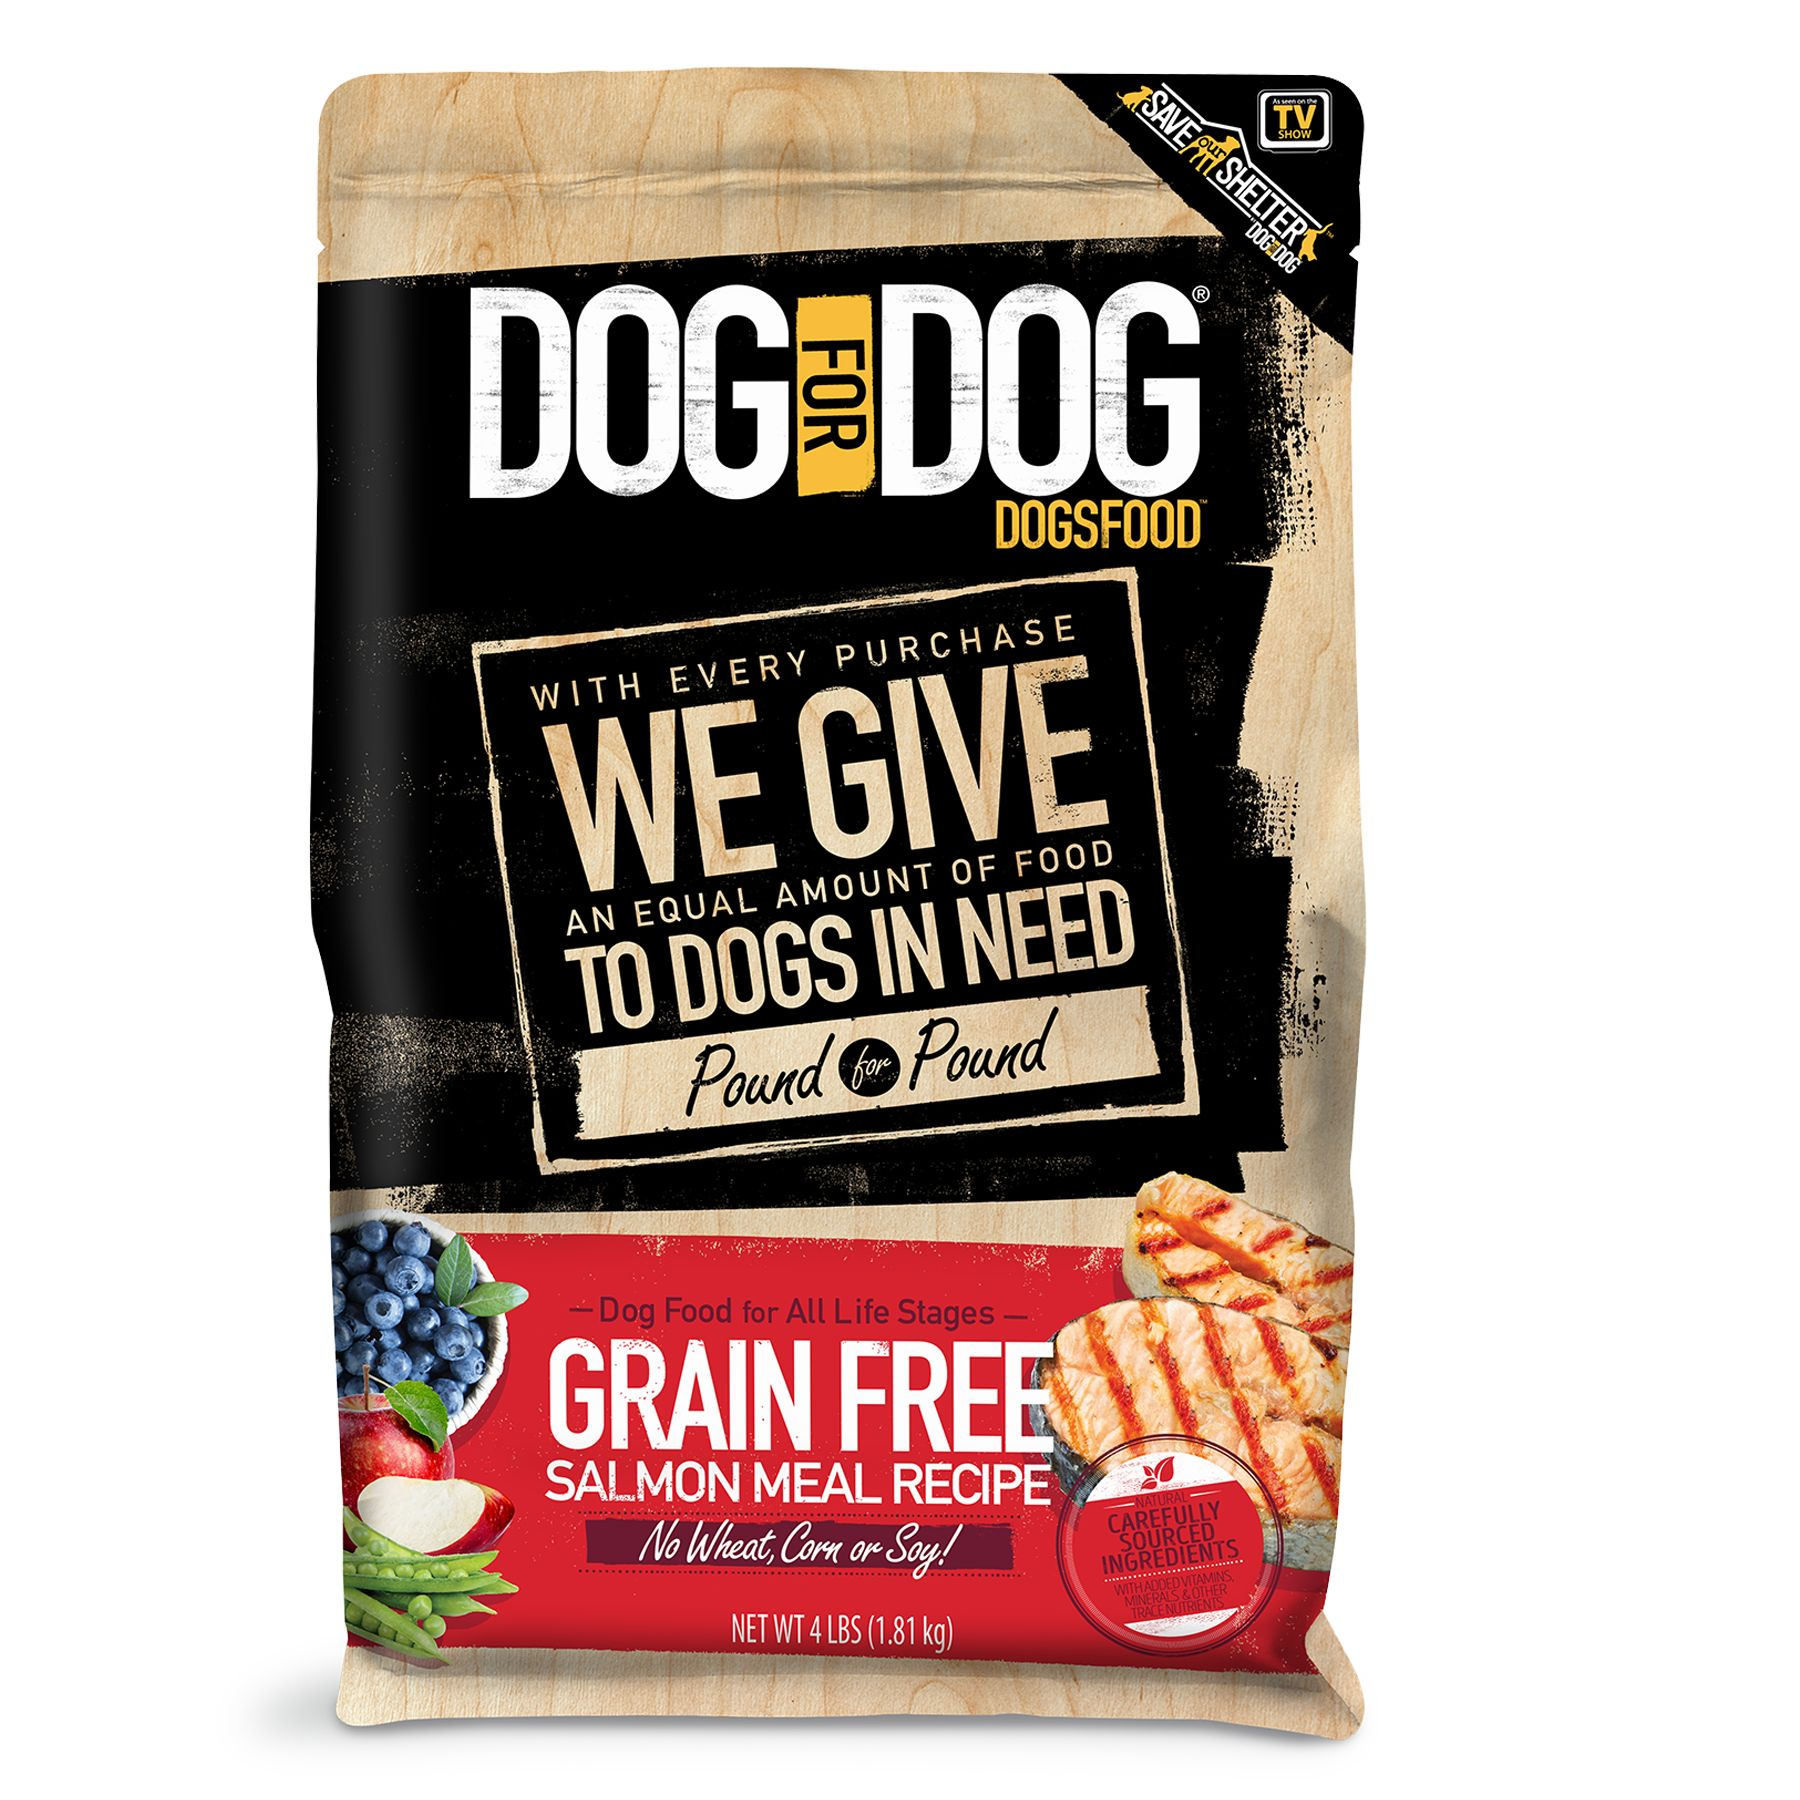 Dog For Dog Dogsfood Grain Free Natural Salmon Meal Size 4 Lb